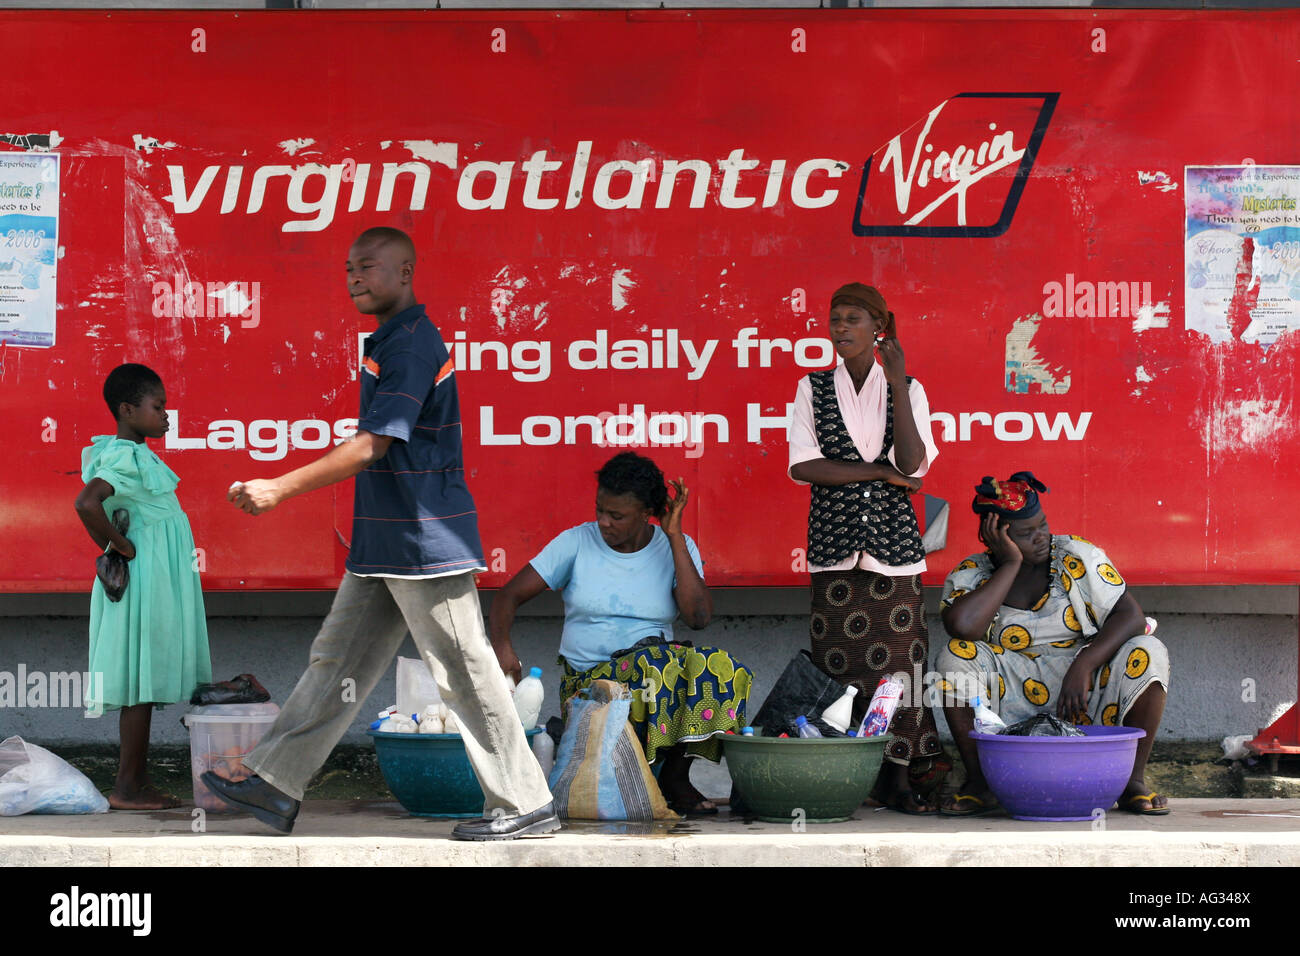 A man walks past women selling goods in front of a Virgin Airlines poster Lagos, Nigeria - Stock Image